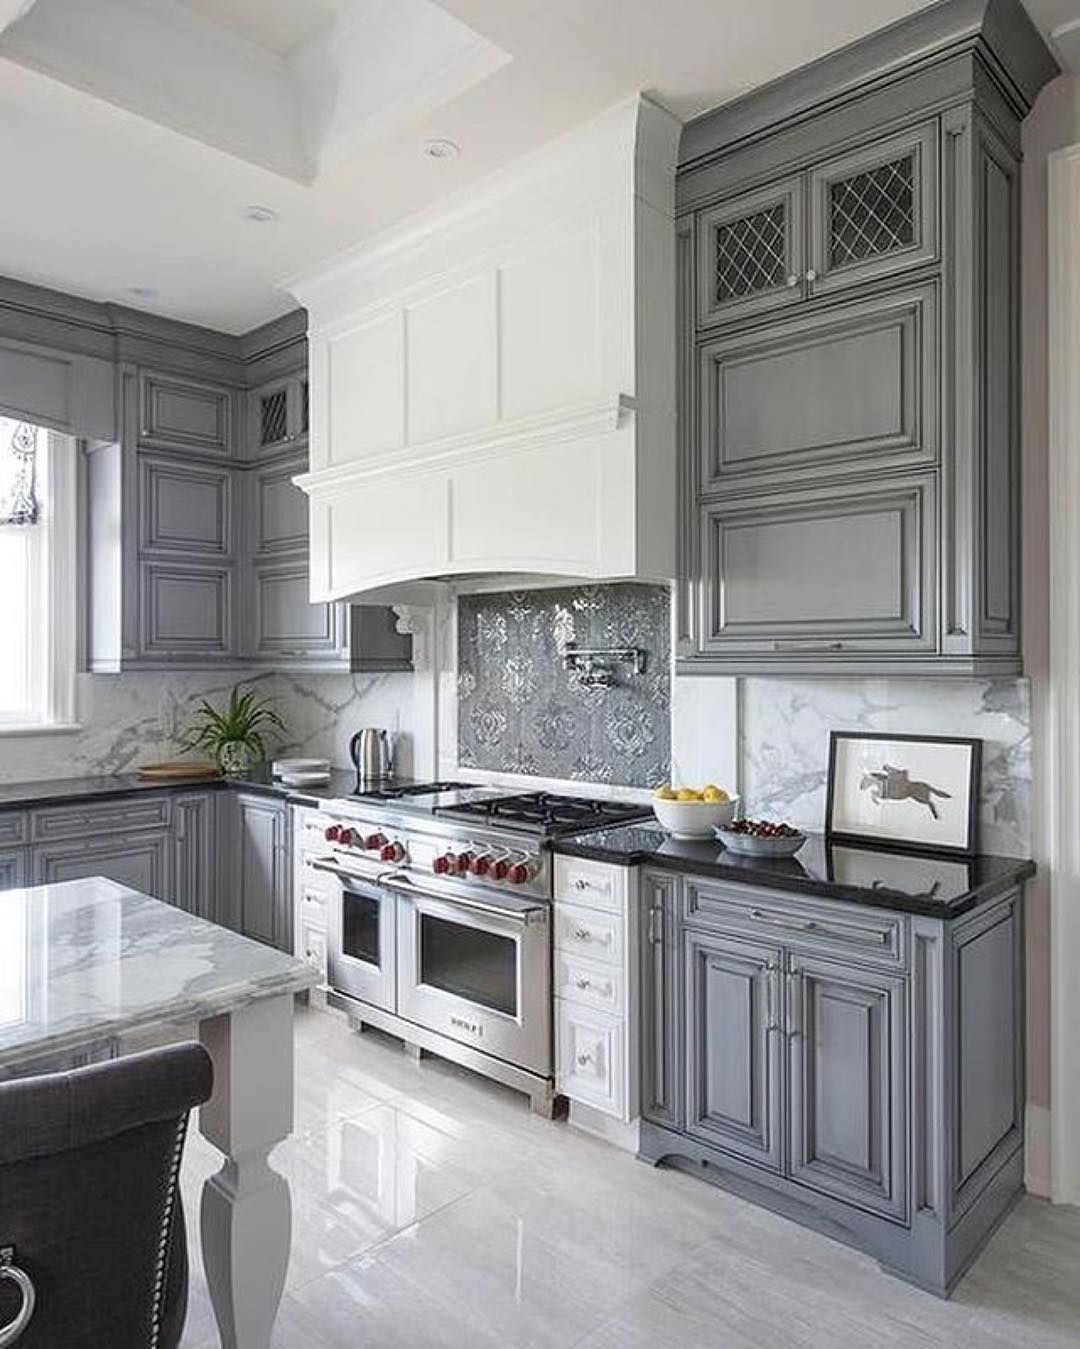 Designing A Home That You Love Means Seeing Yourself And Your Style Of Life In Every Room I Cook 5 Grey Kitchen Walls Kitchen Cabinet Design Kitchen Interior